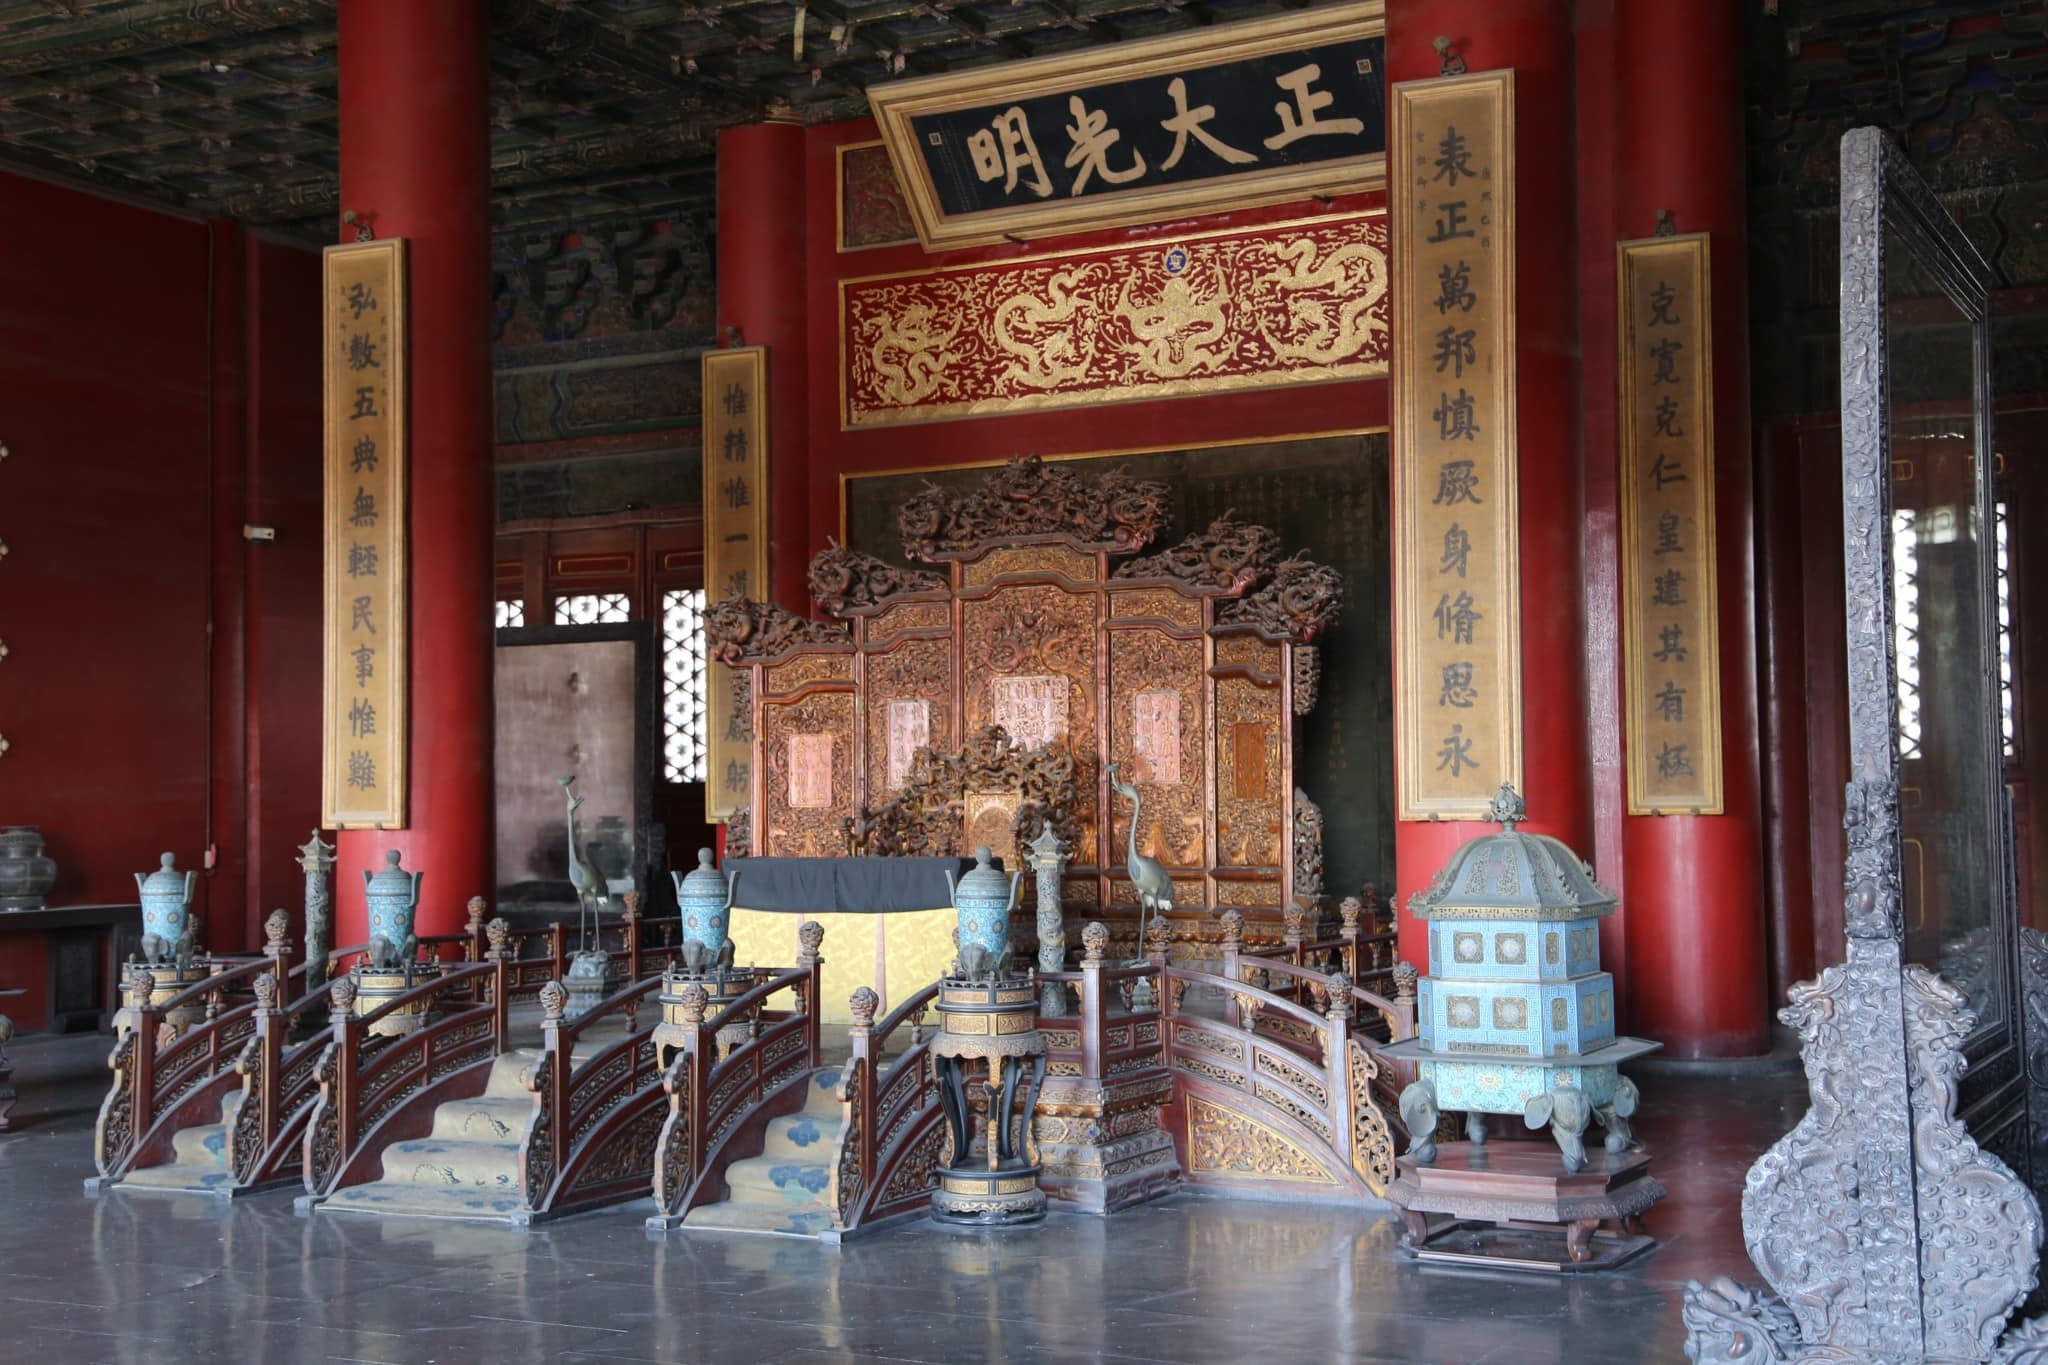 Beijing: Fall in Love With The Beauty of China! - Traveler ...  |Imperial Palace Forbidden City Beijing China